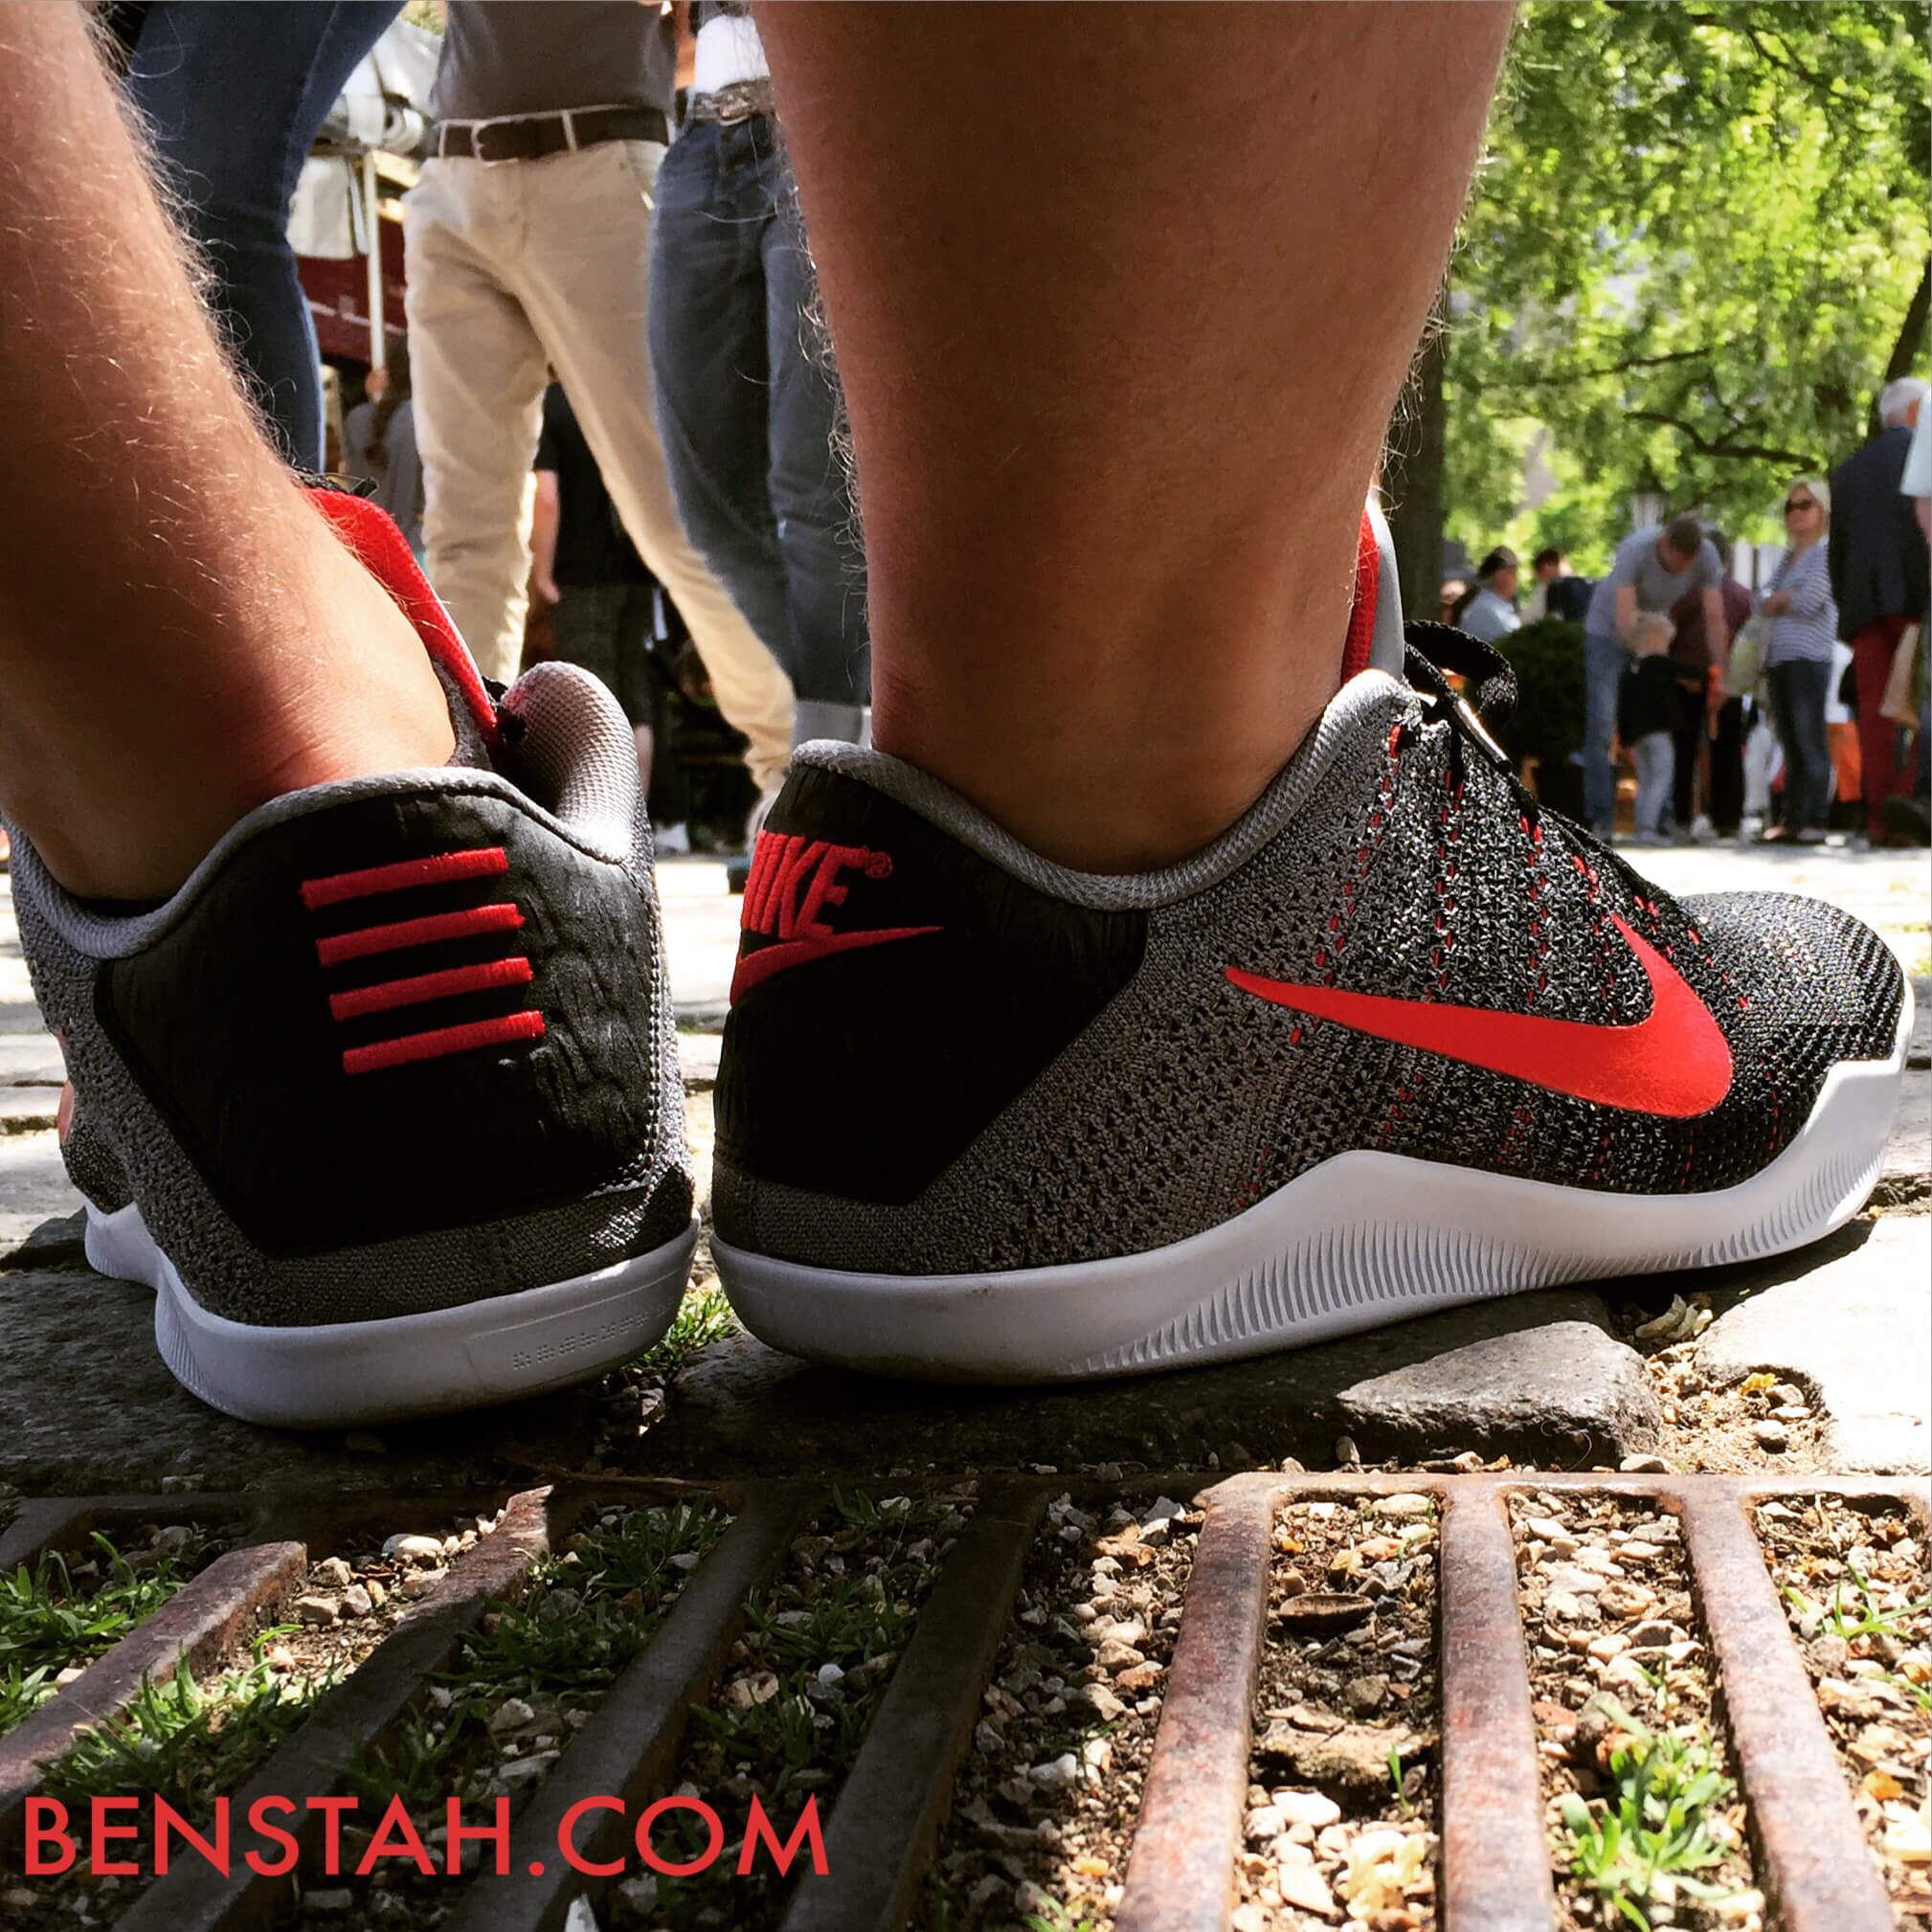 Nike-Kobe-11-Elite-Low-Tinker-Hatfield-Rear-View-Benstah-Onfeet